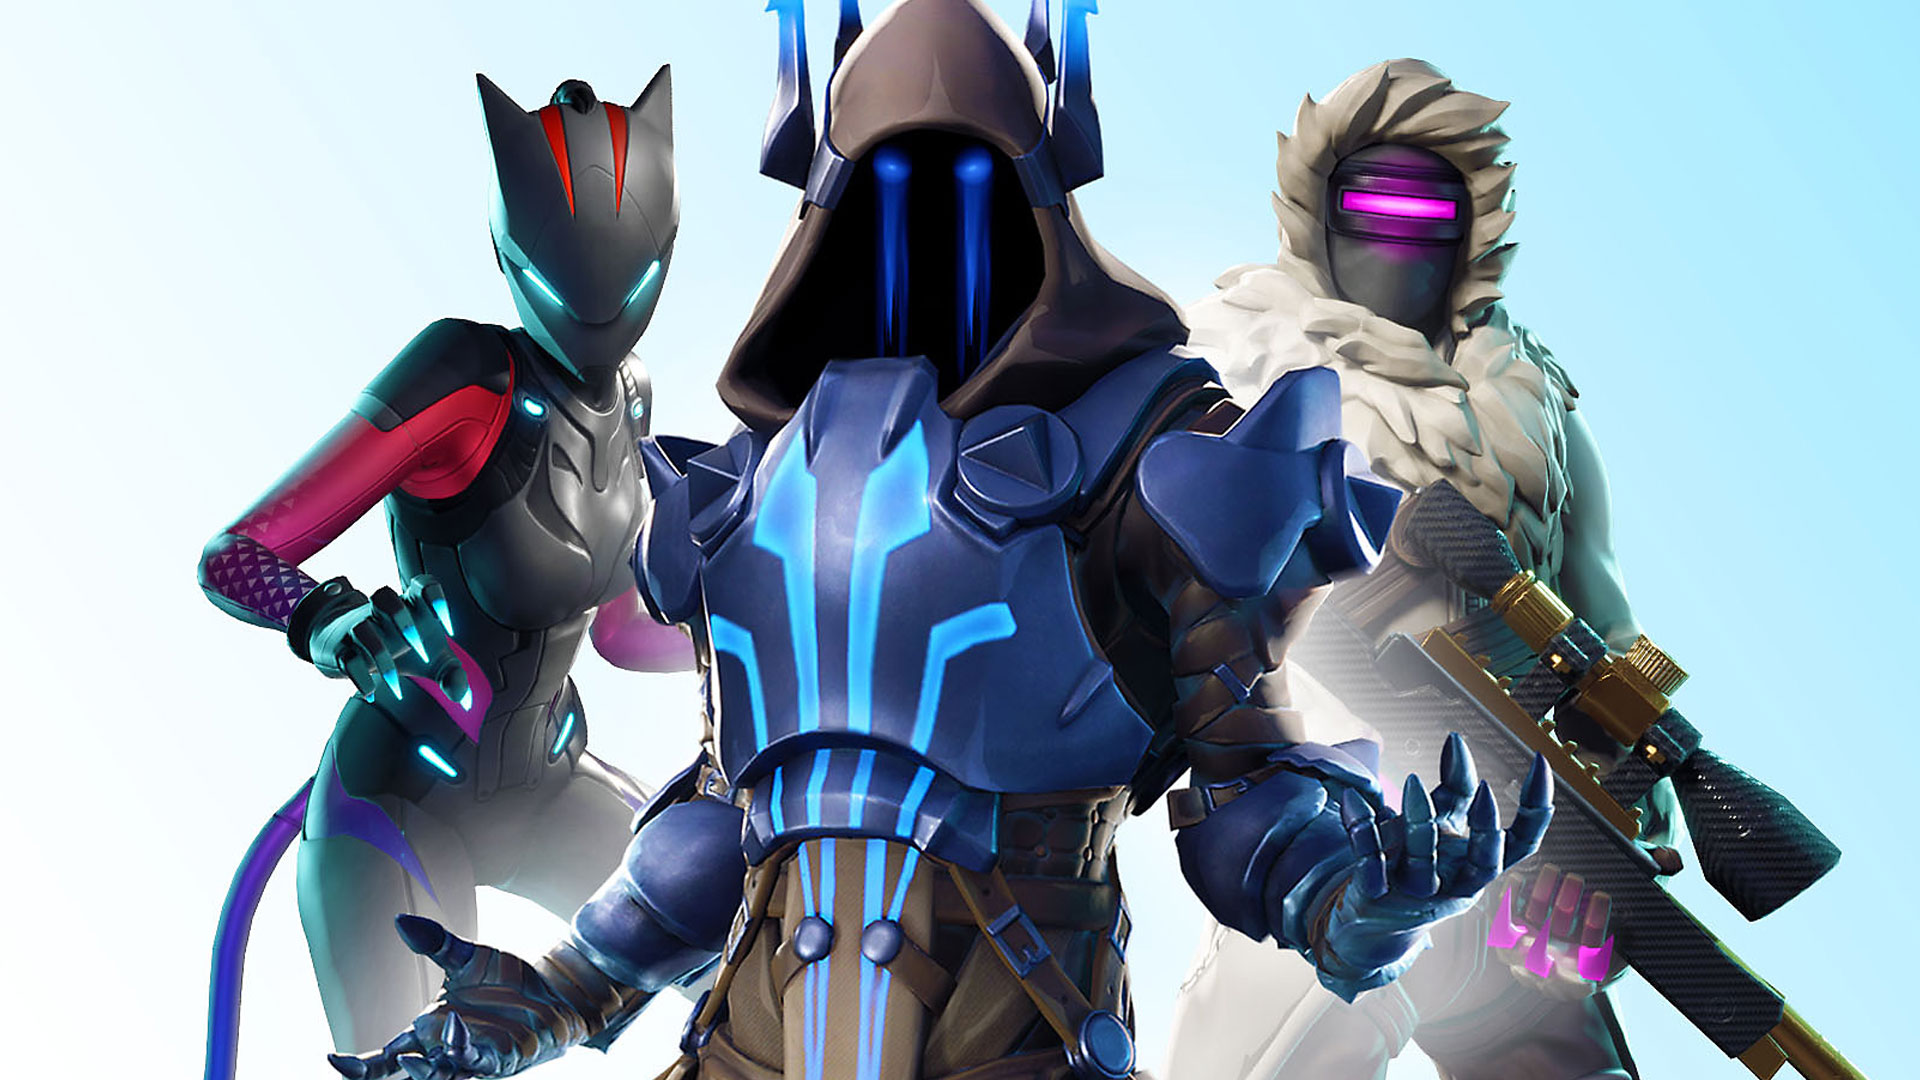 Watch Clip: Fortnite Season 7 Gameplay | Prime Video